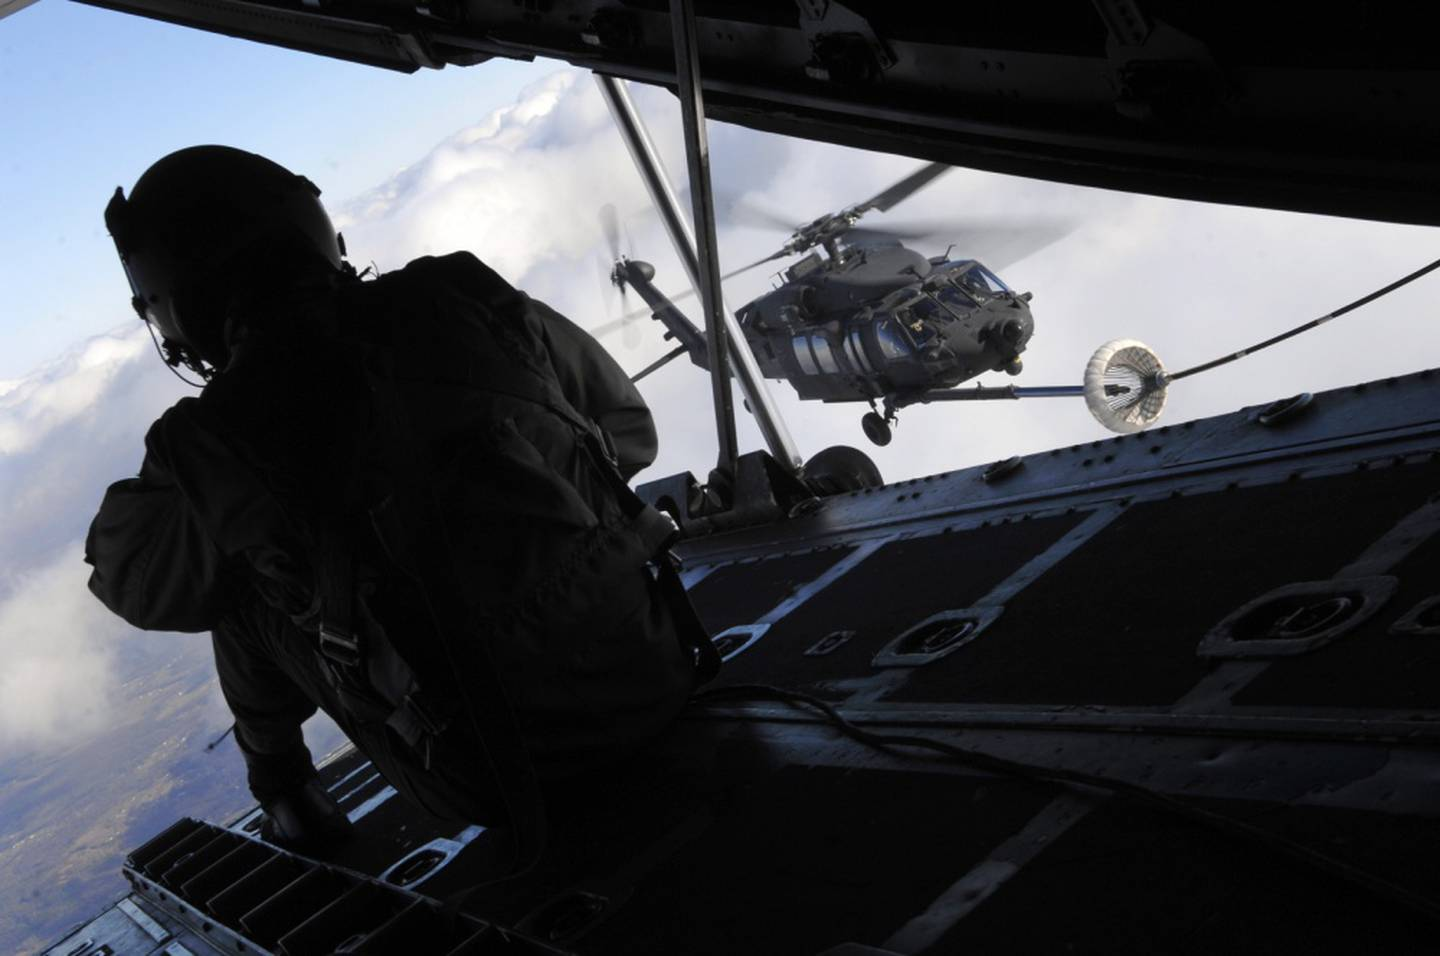 Staff Sgt. Jeremy Mayo, a 9th Special Operations Squadron loadmaster aboard a C-130P, looks for signs of difficulty during an aerial refueling mission over Fort Campbell, Kentucky, Dec. 2, 2008. (Senior Airman Julianne Showalter/Air Force)